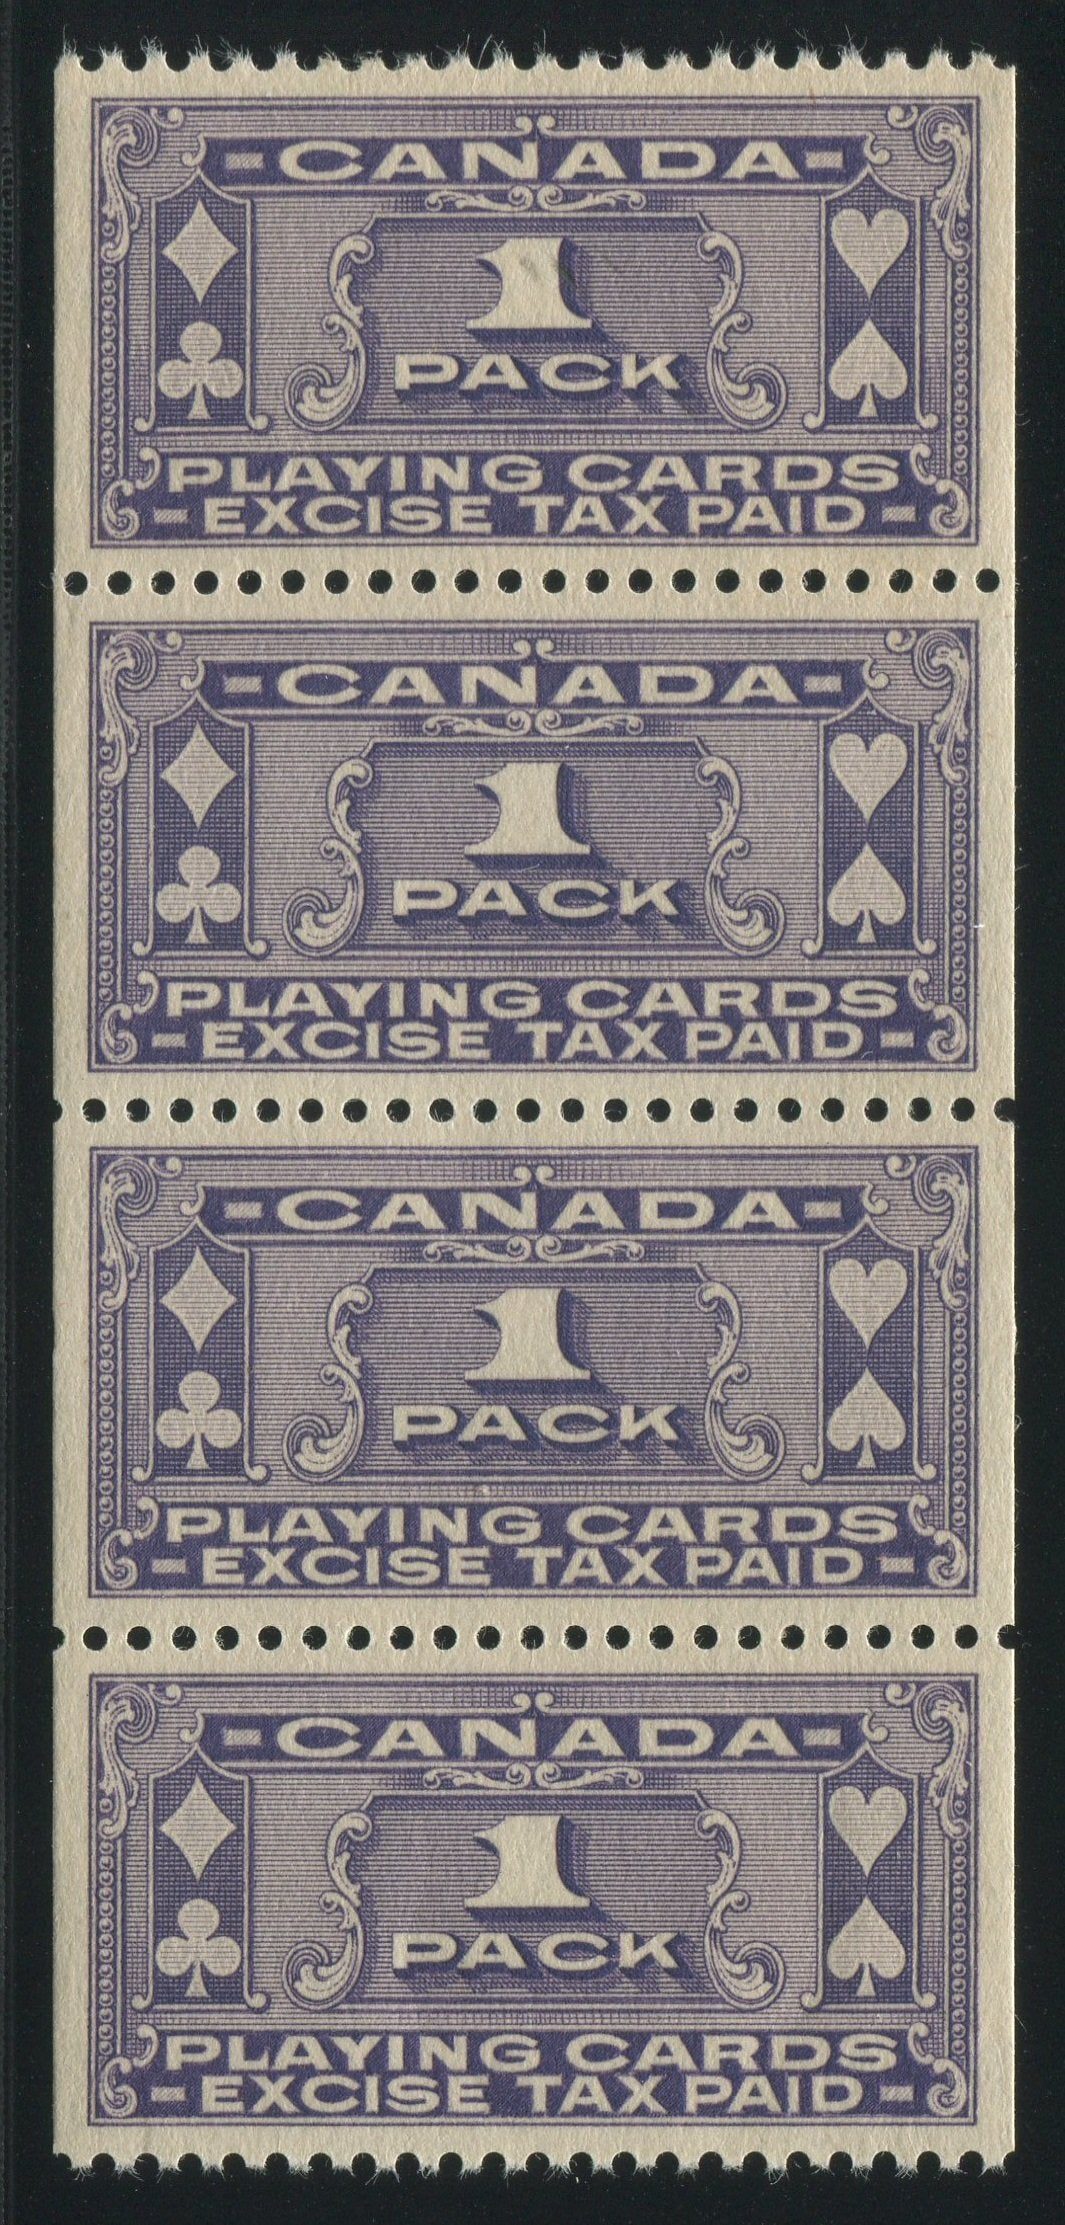 0003PC1708 - FPC1a - Mint Coil Strip of 4 - Deveney Stamps Ltd. Canadian Stamps